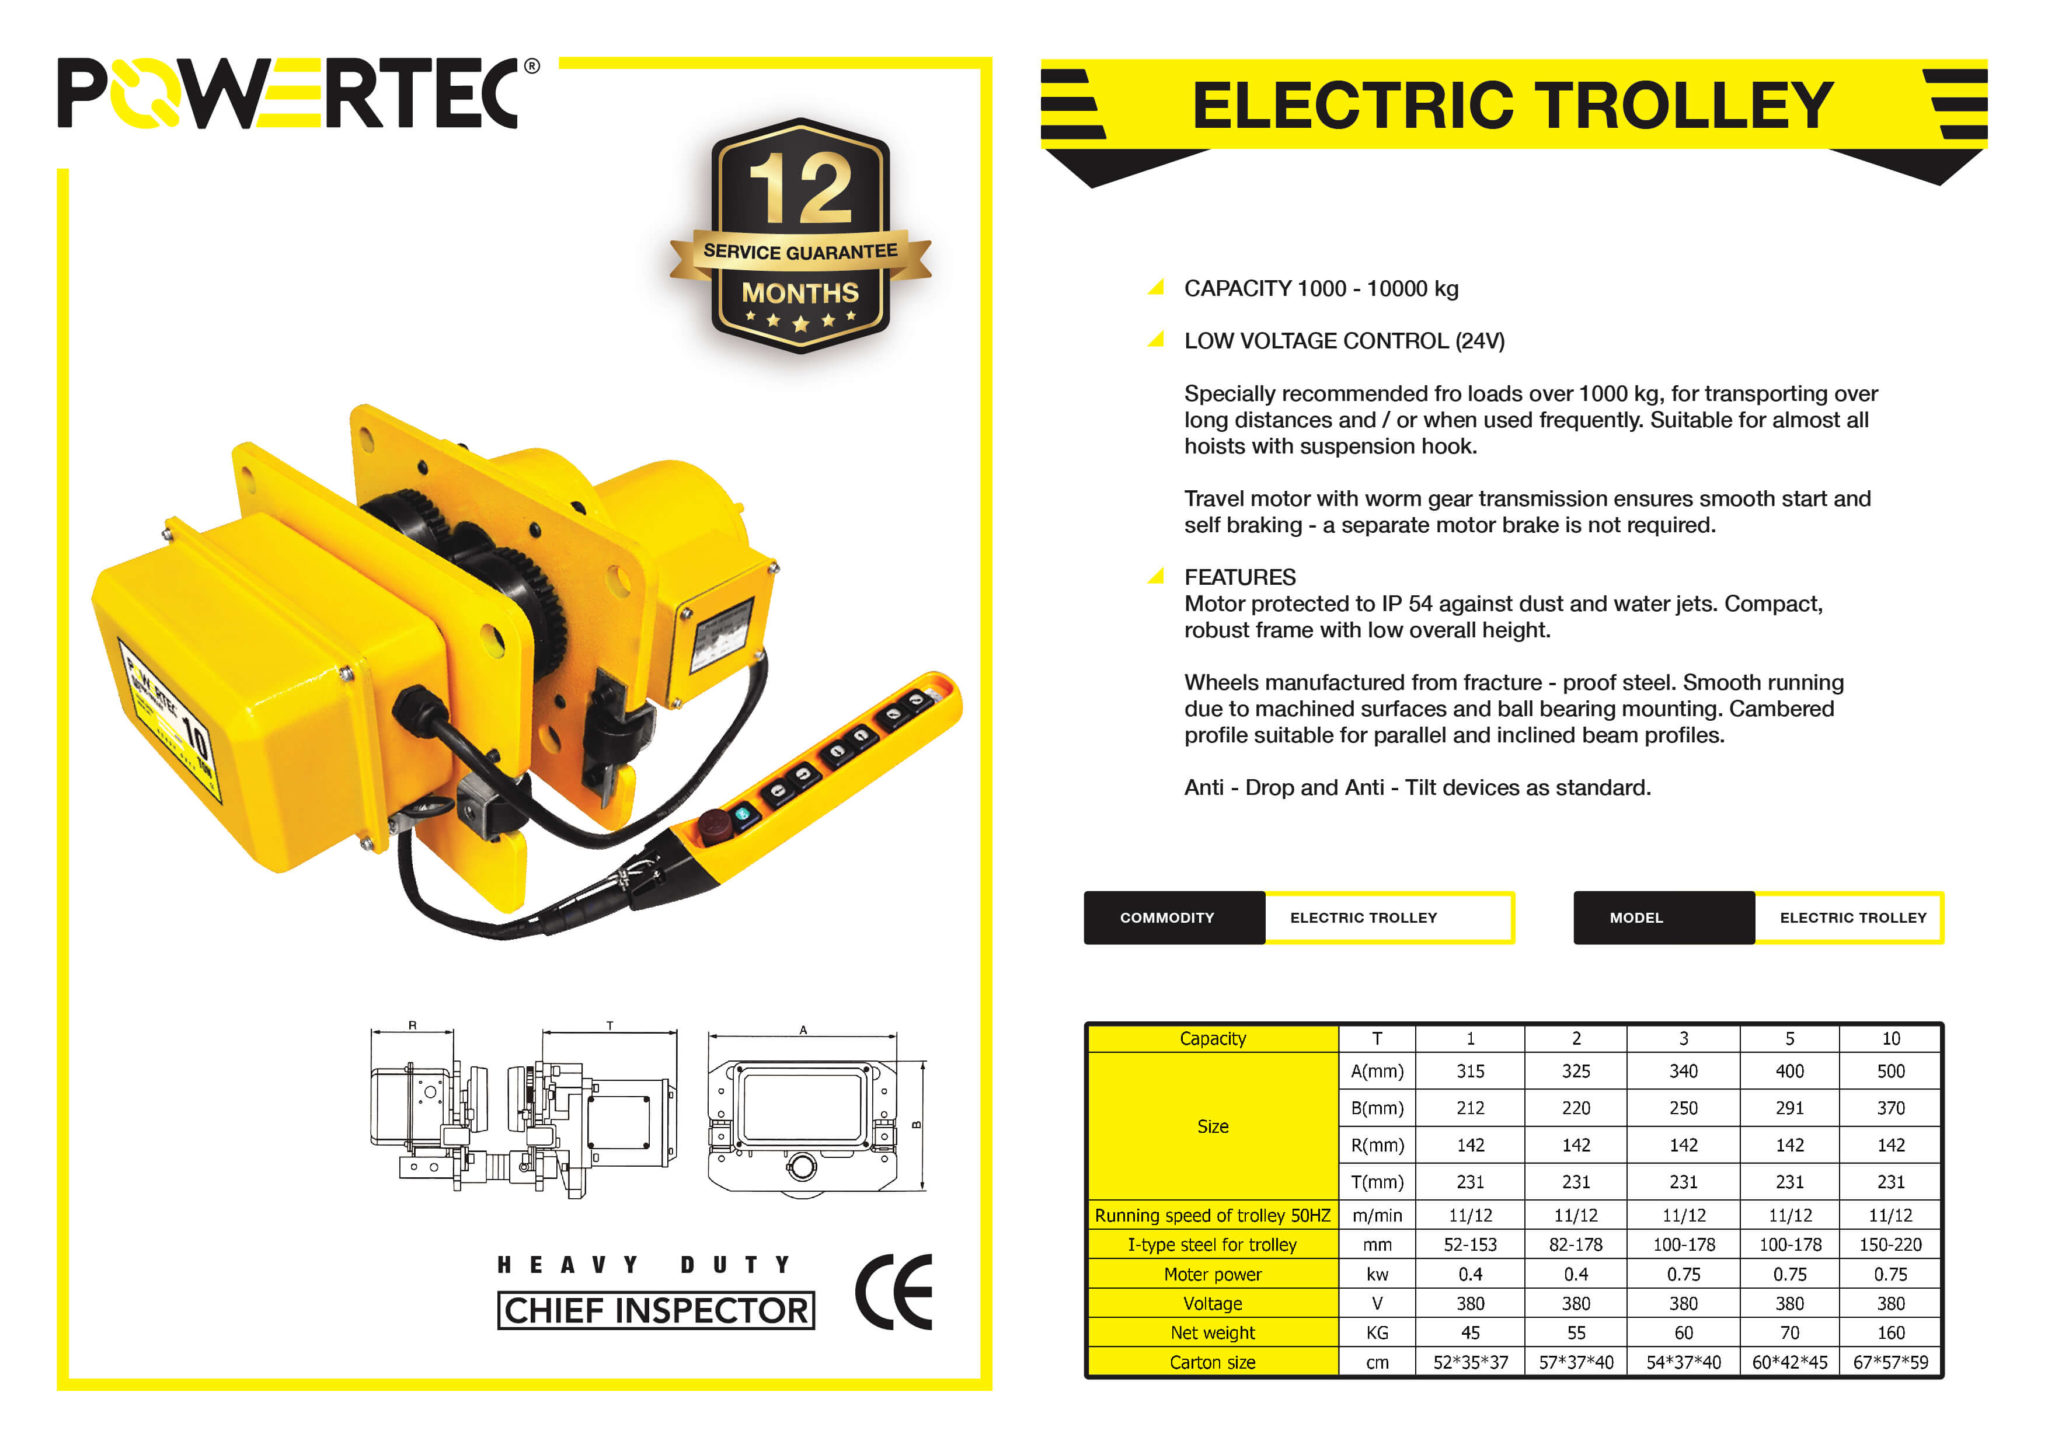 POWERTEC ELECTRIC TROLLEY BROCHURE